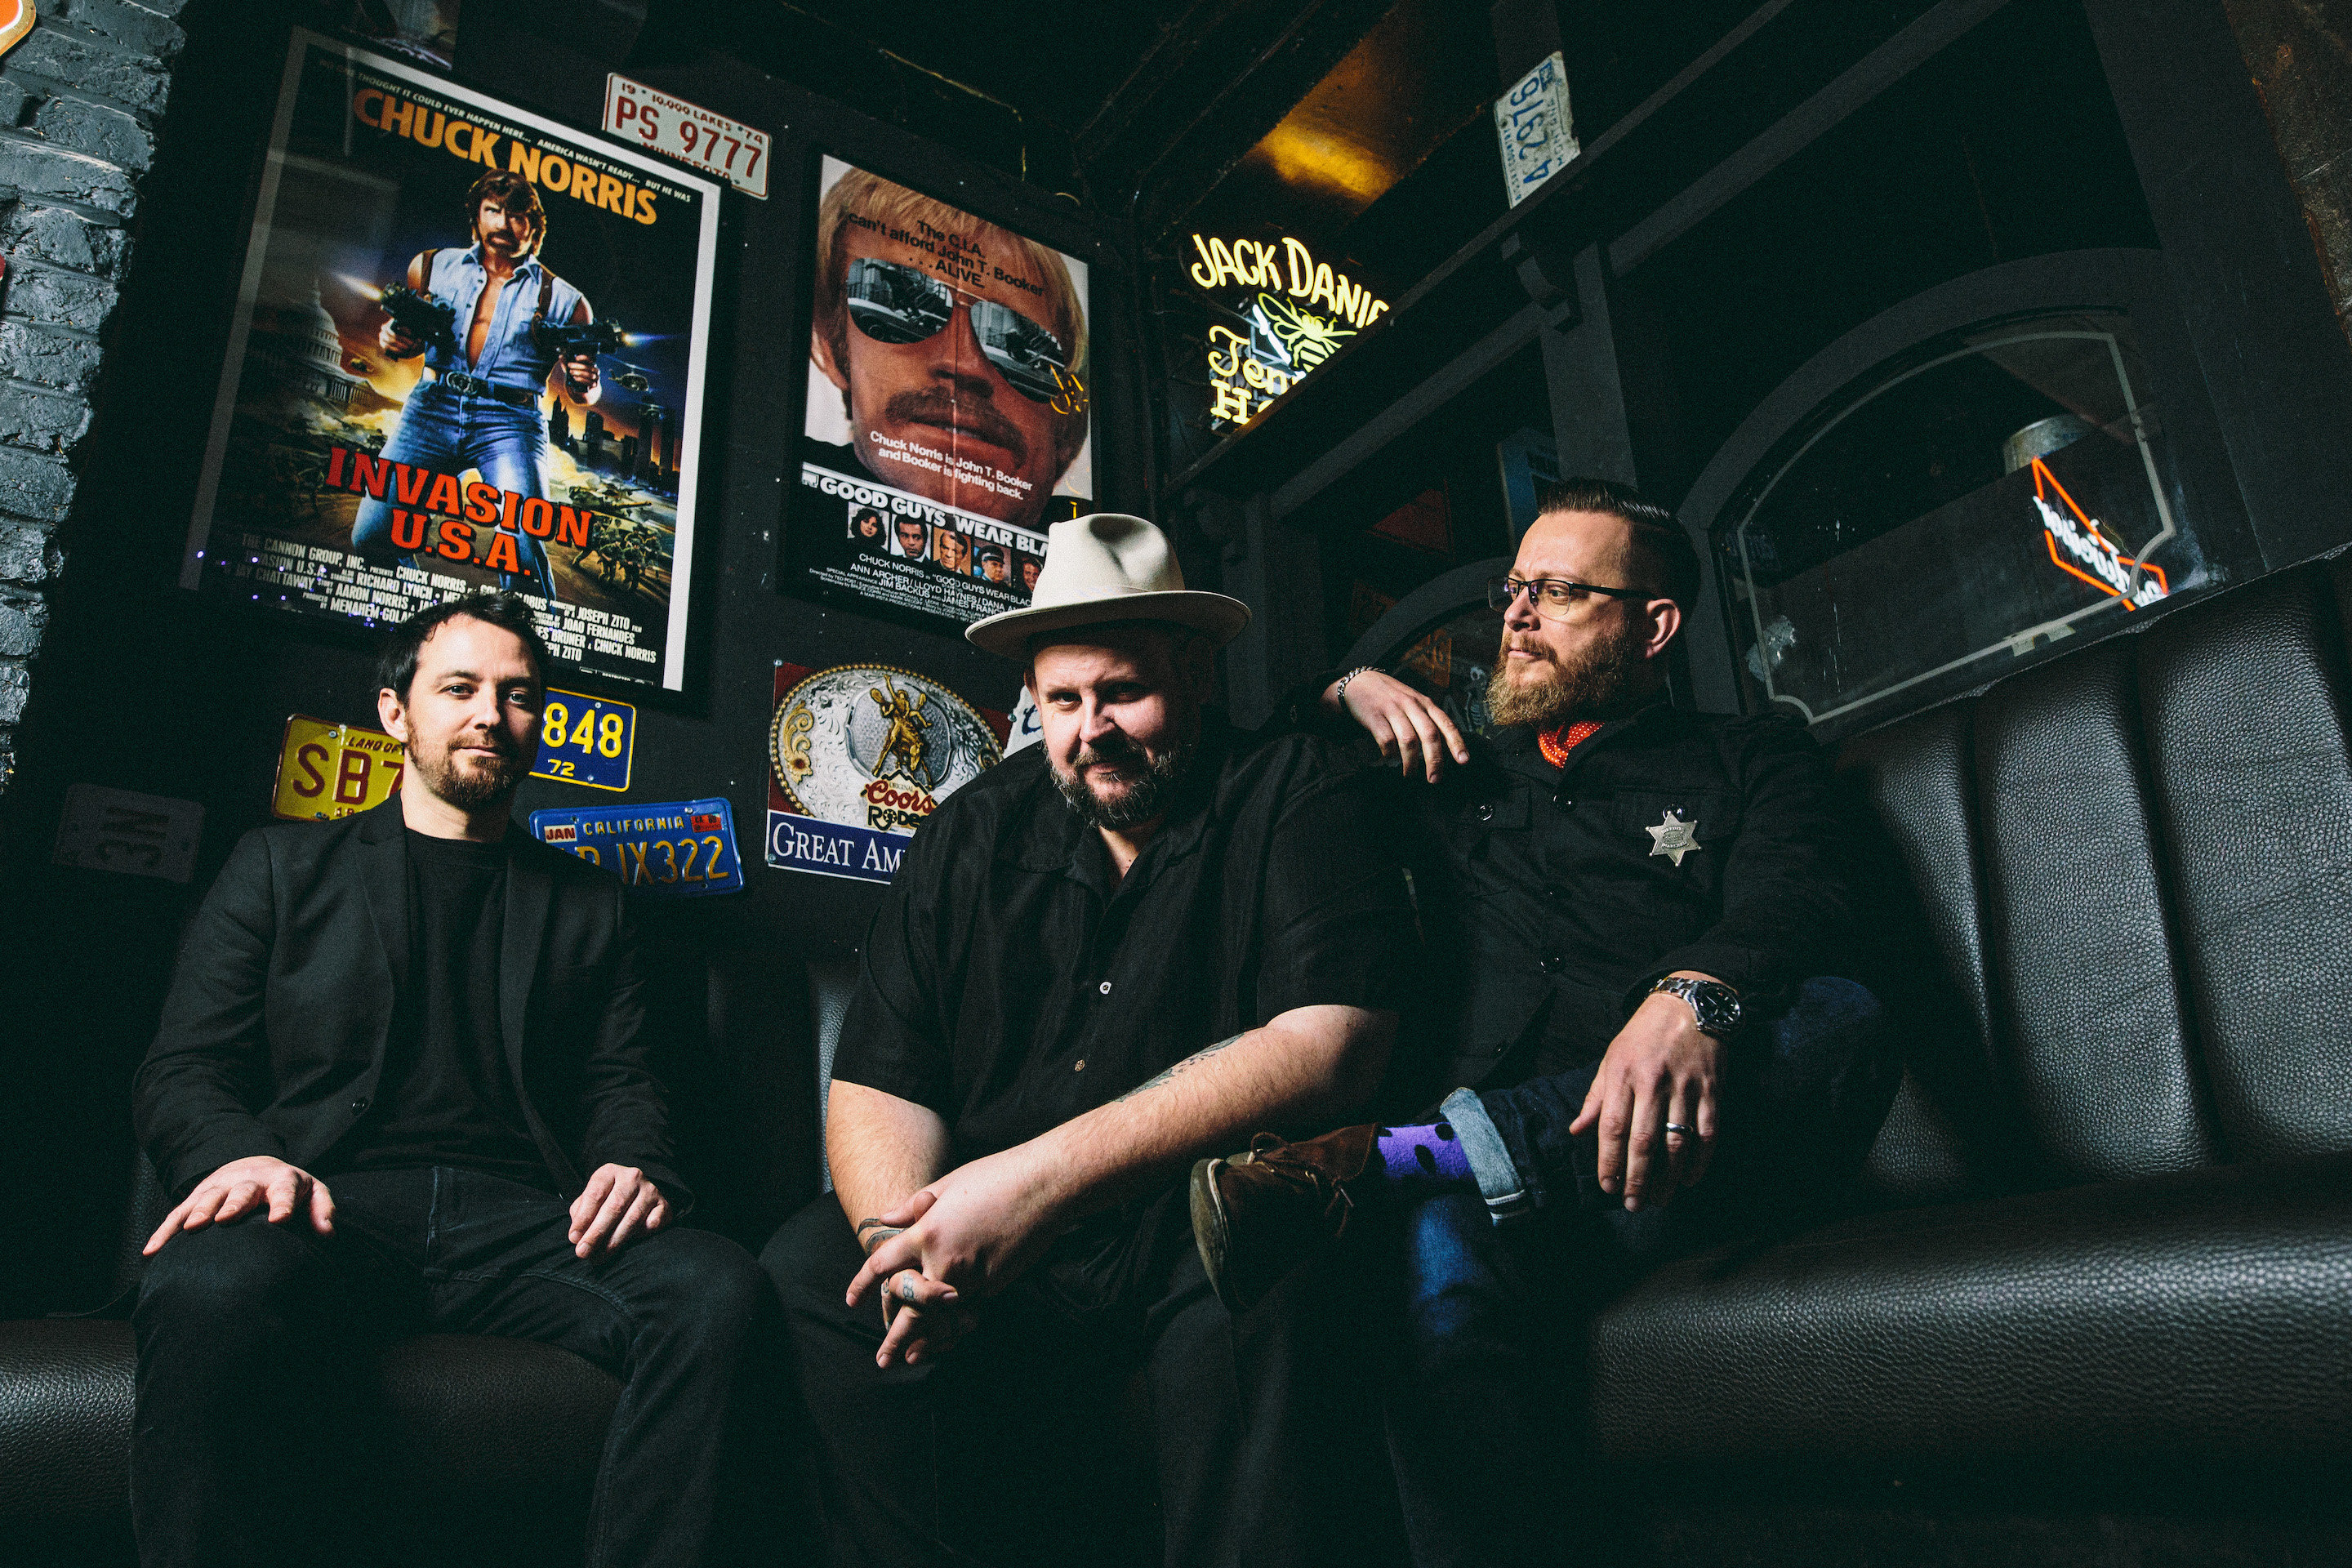 Big Boy Bloater & The LiMiTs Reveal Video For 'Friday Night's Alright For Drinking' + UK September/October Dates Announced